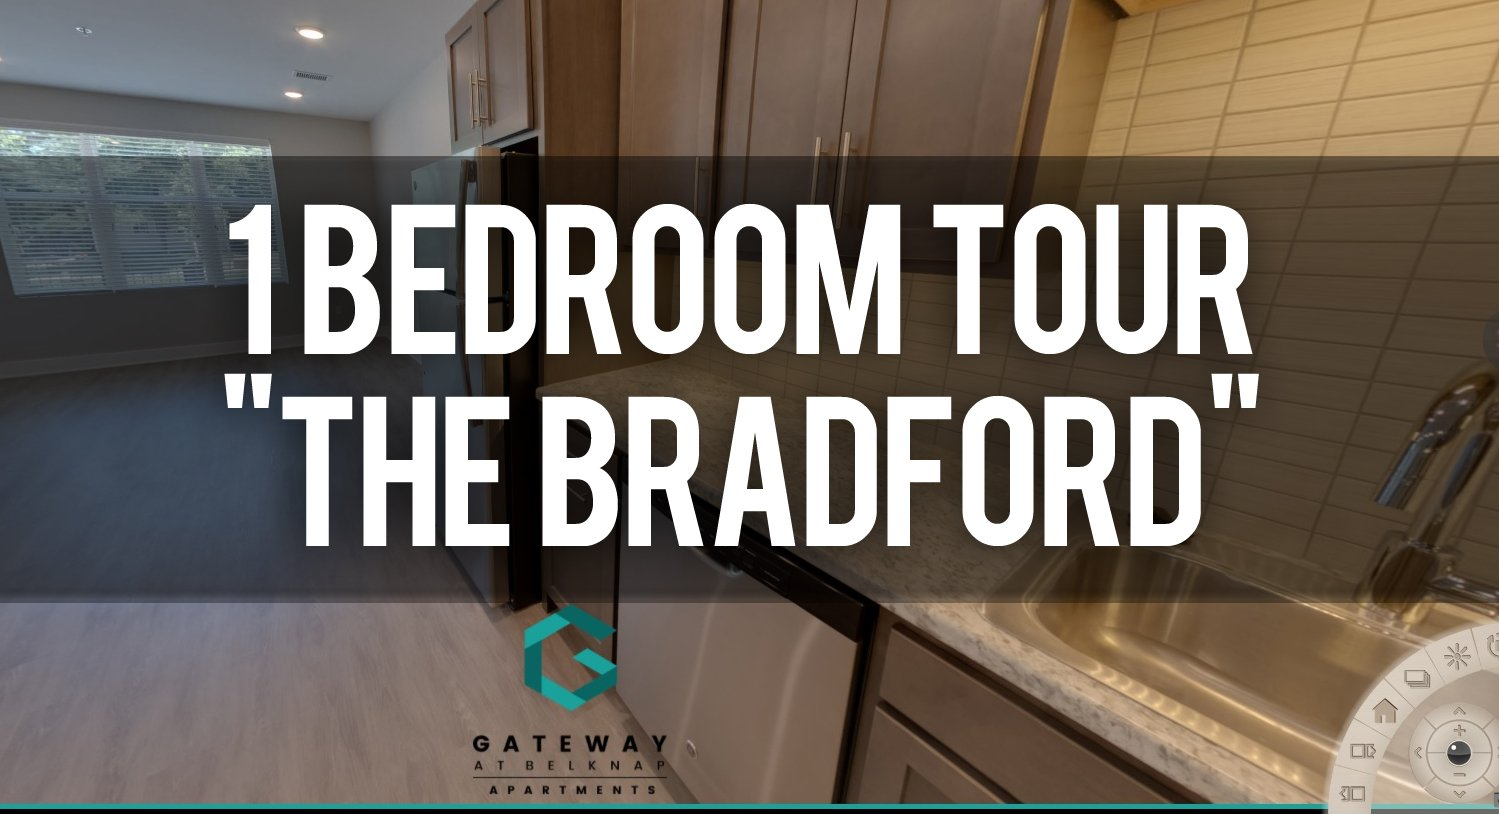 Virtual Tour of The Bradford 1 Bedroom Floorplan at Gateway at Belknap Apartments